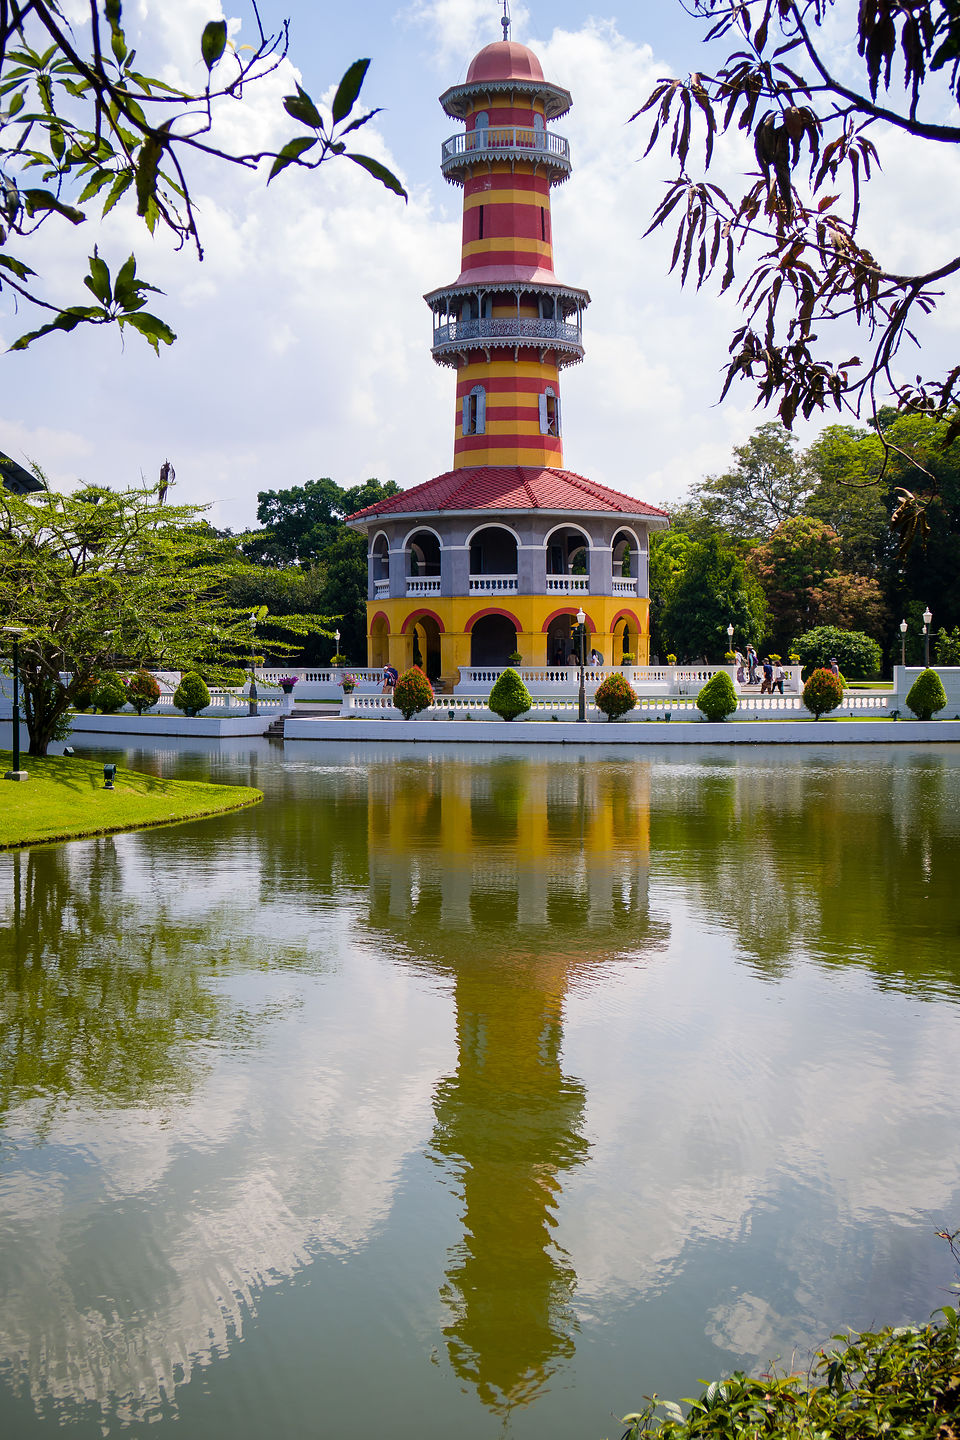 King Rama V's Lookout Tower